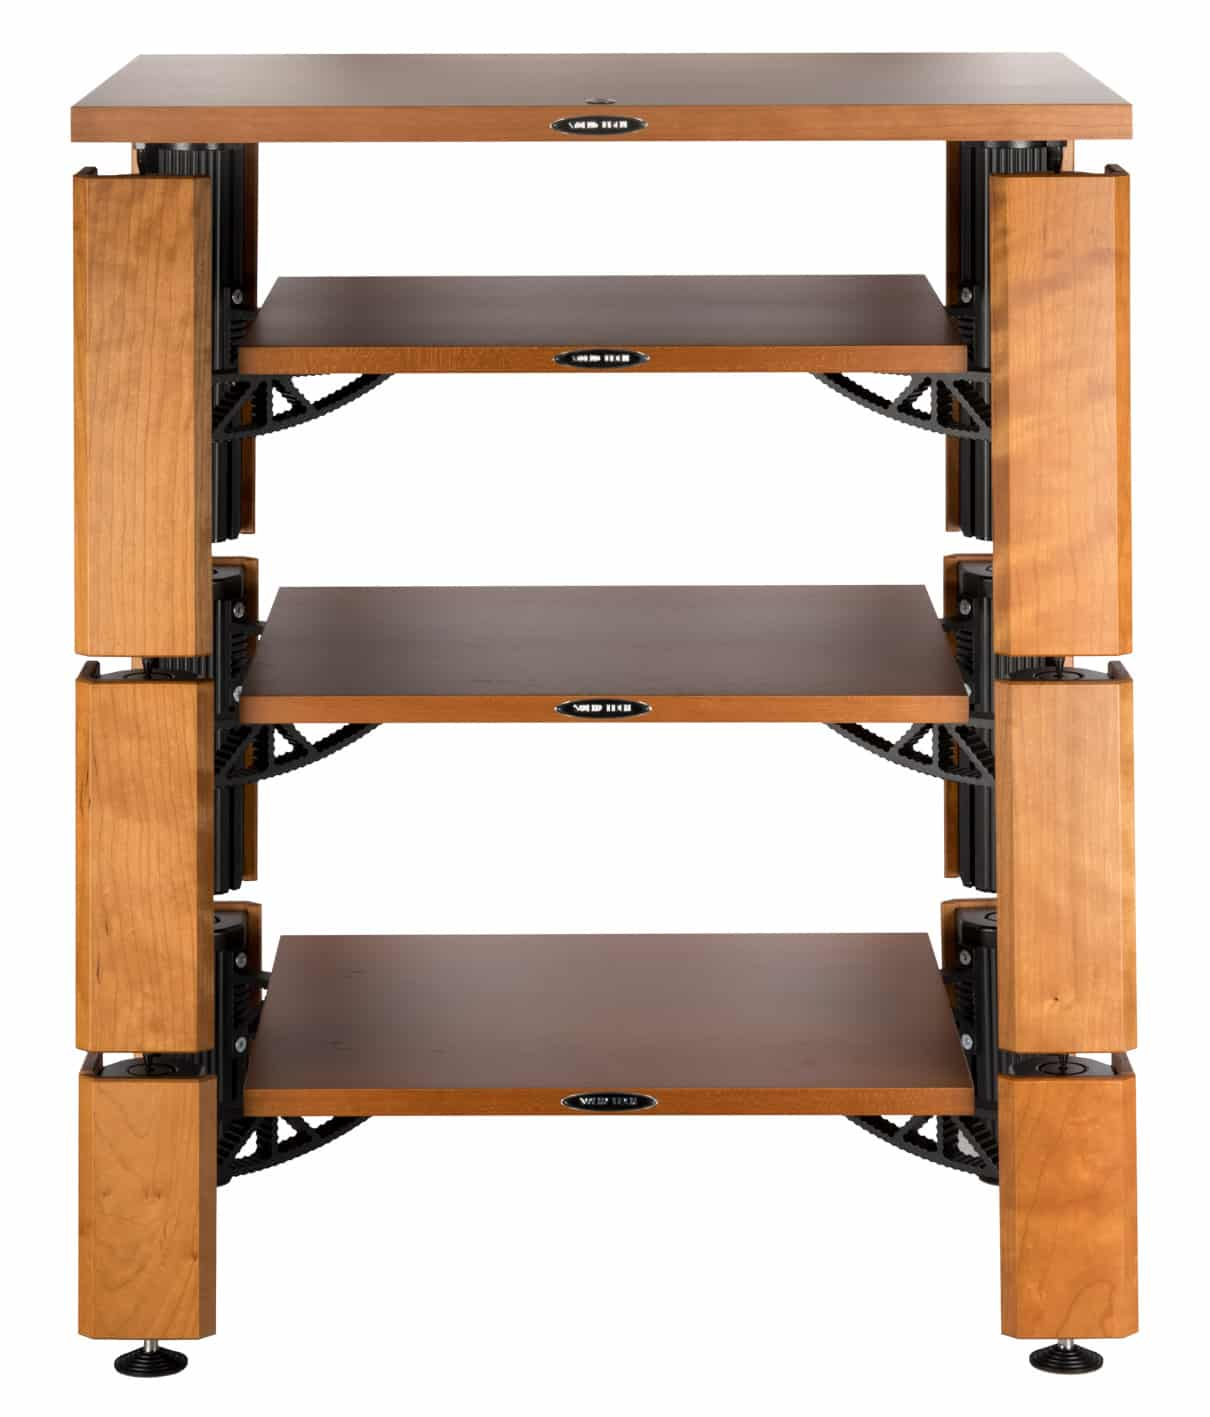 Hybrid Wood 3 shelf-kit Image